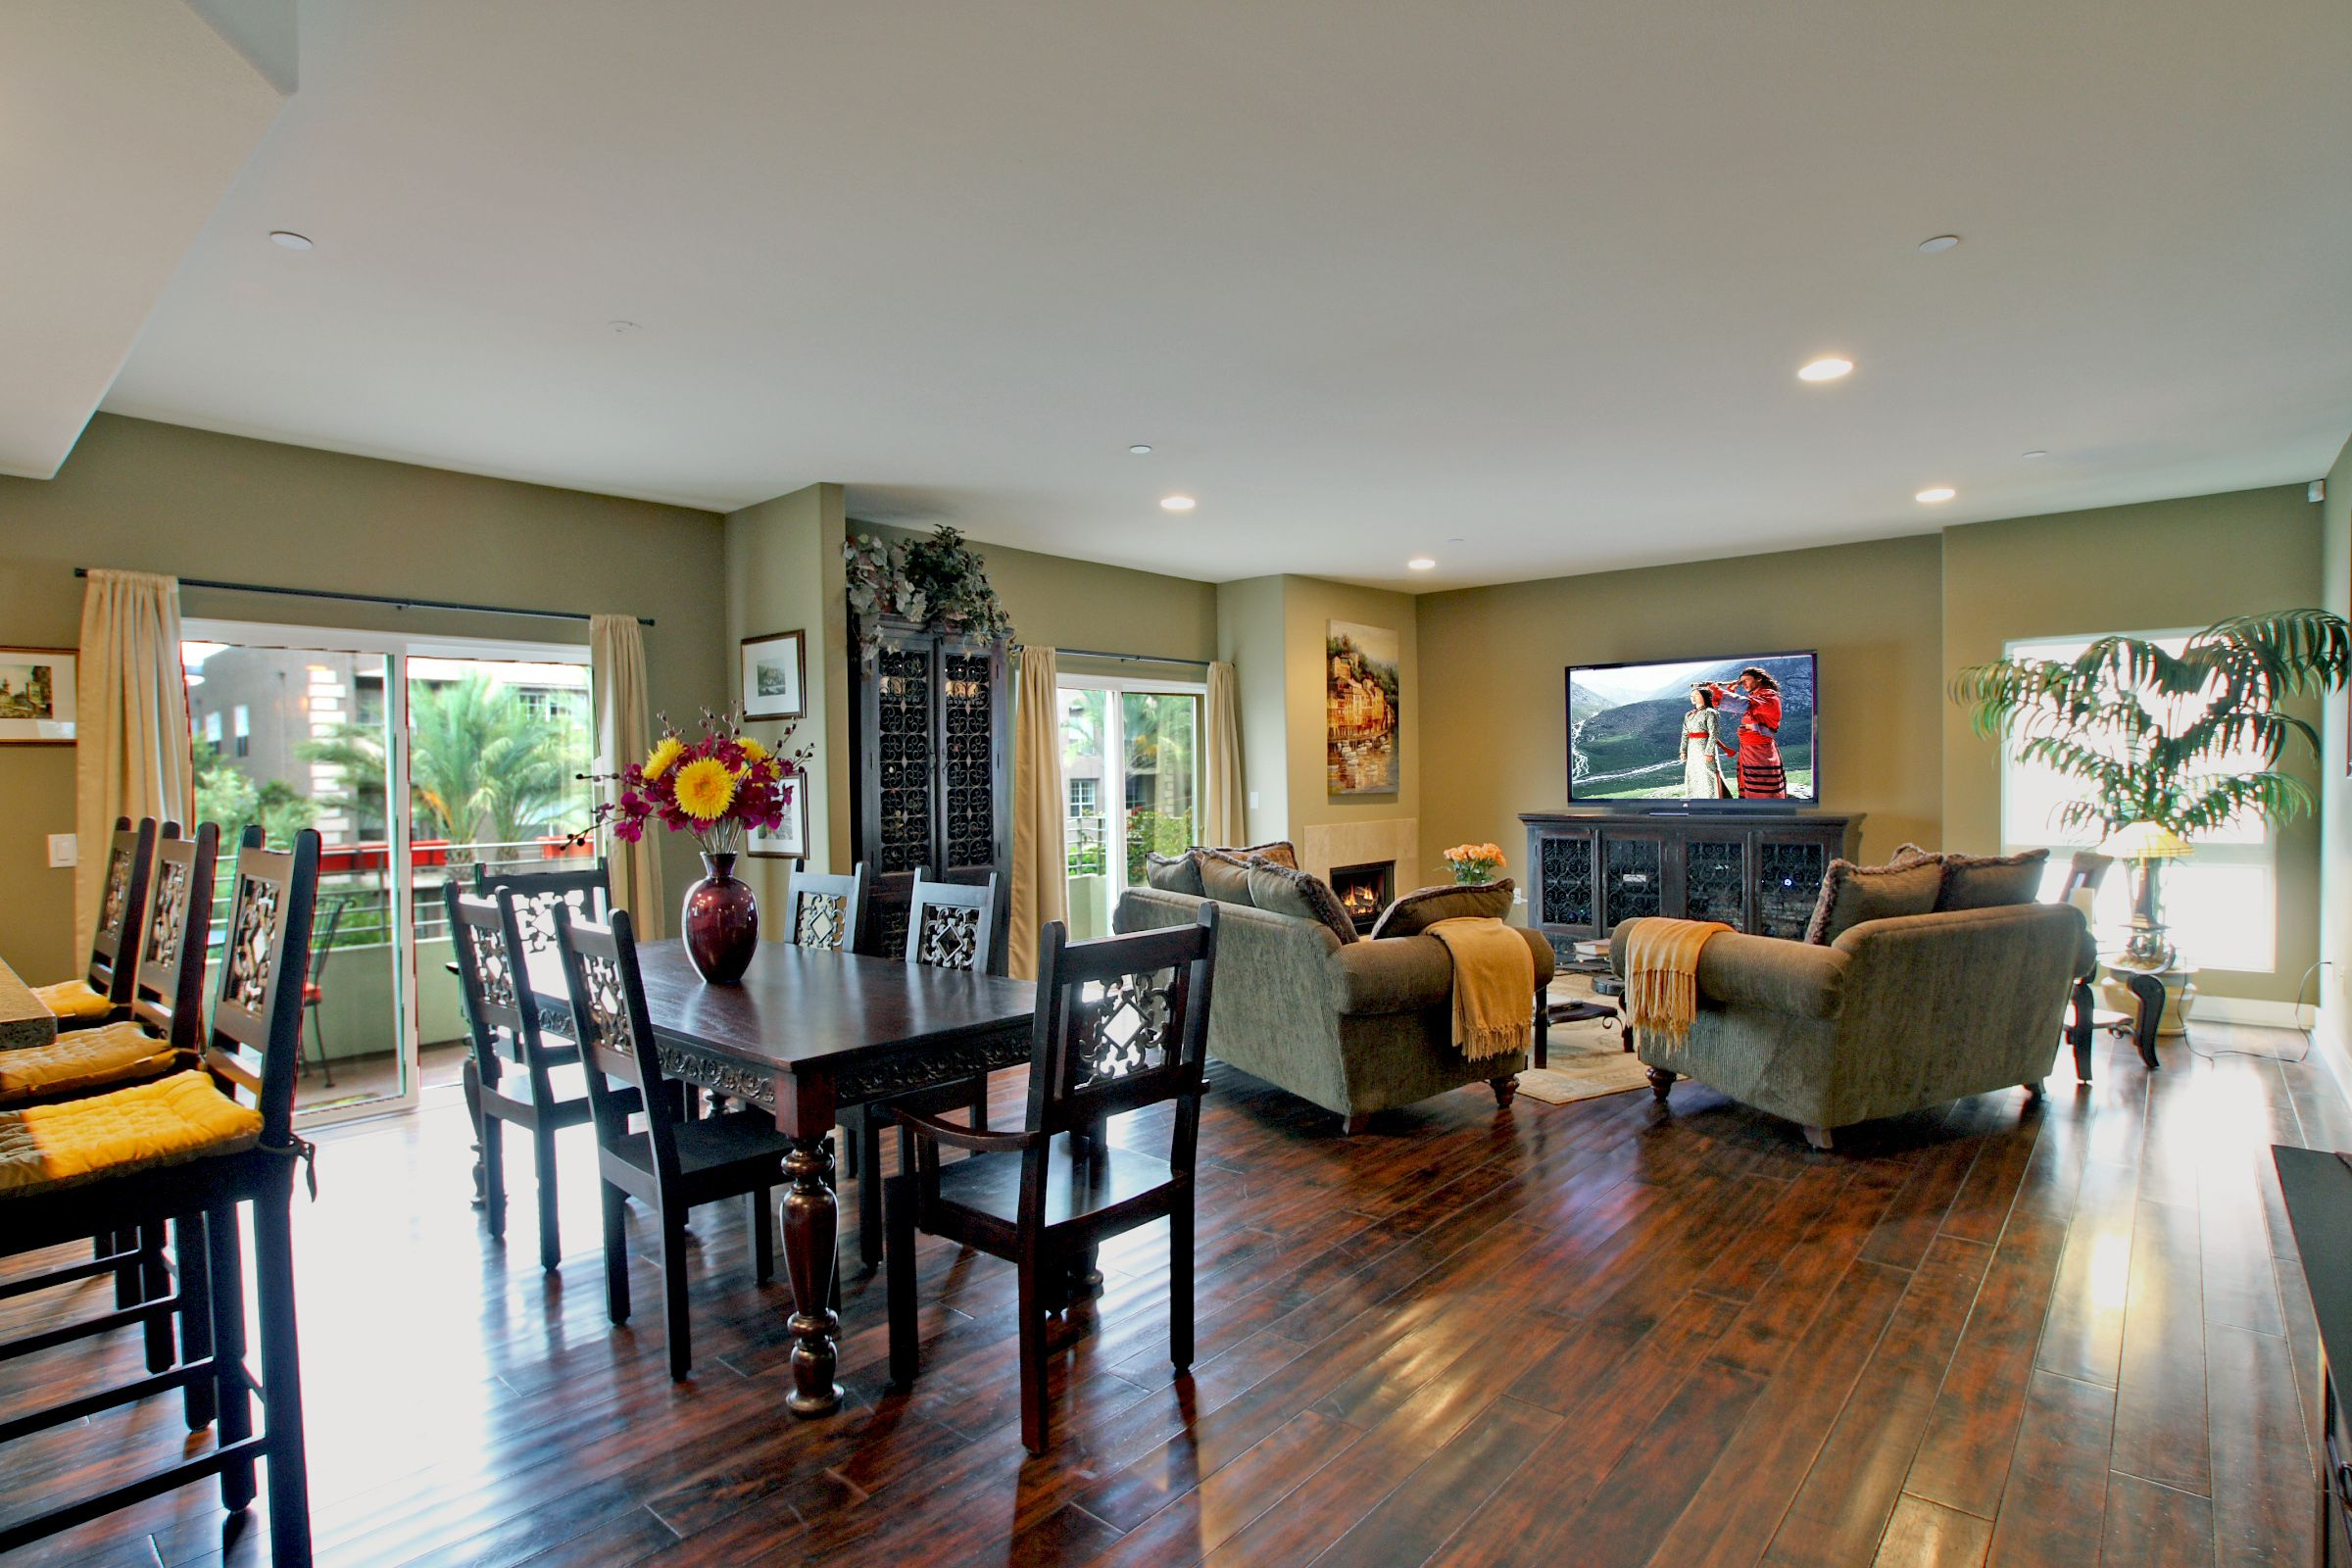 Just Sold 7249 Franklin Ave 401 Los Angeles Ca 90046 Living Room And Kitchen Design Wooden Dining Set Open Floor Plan Kitchen